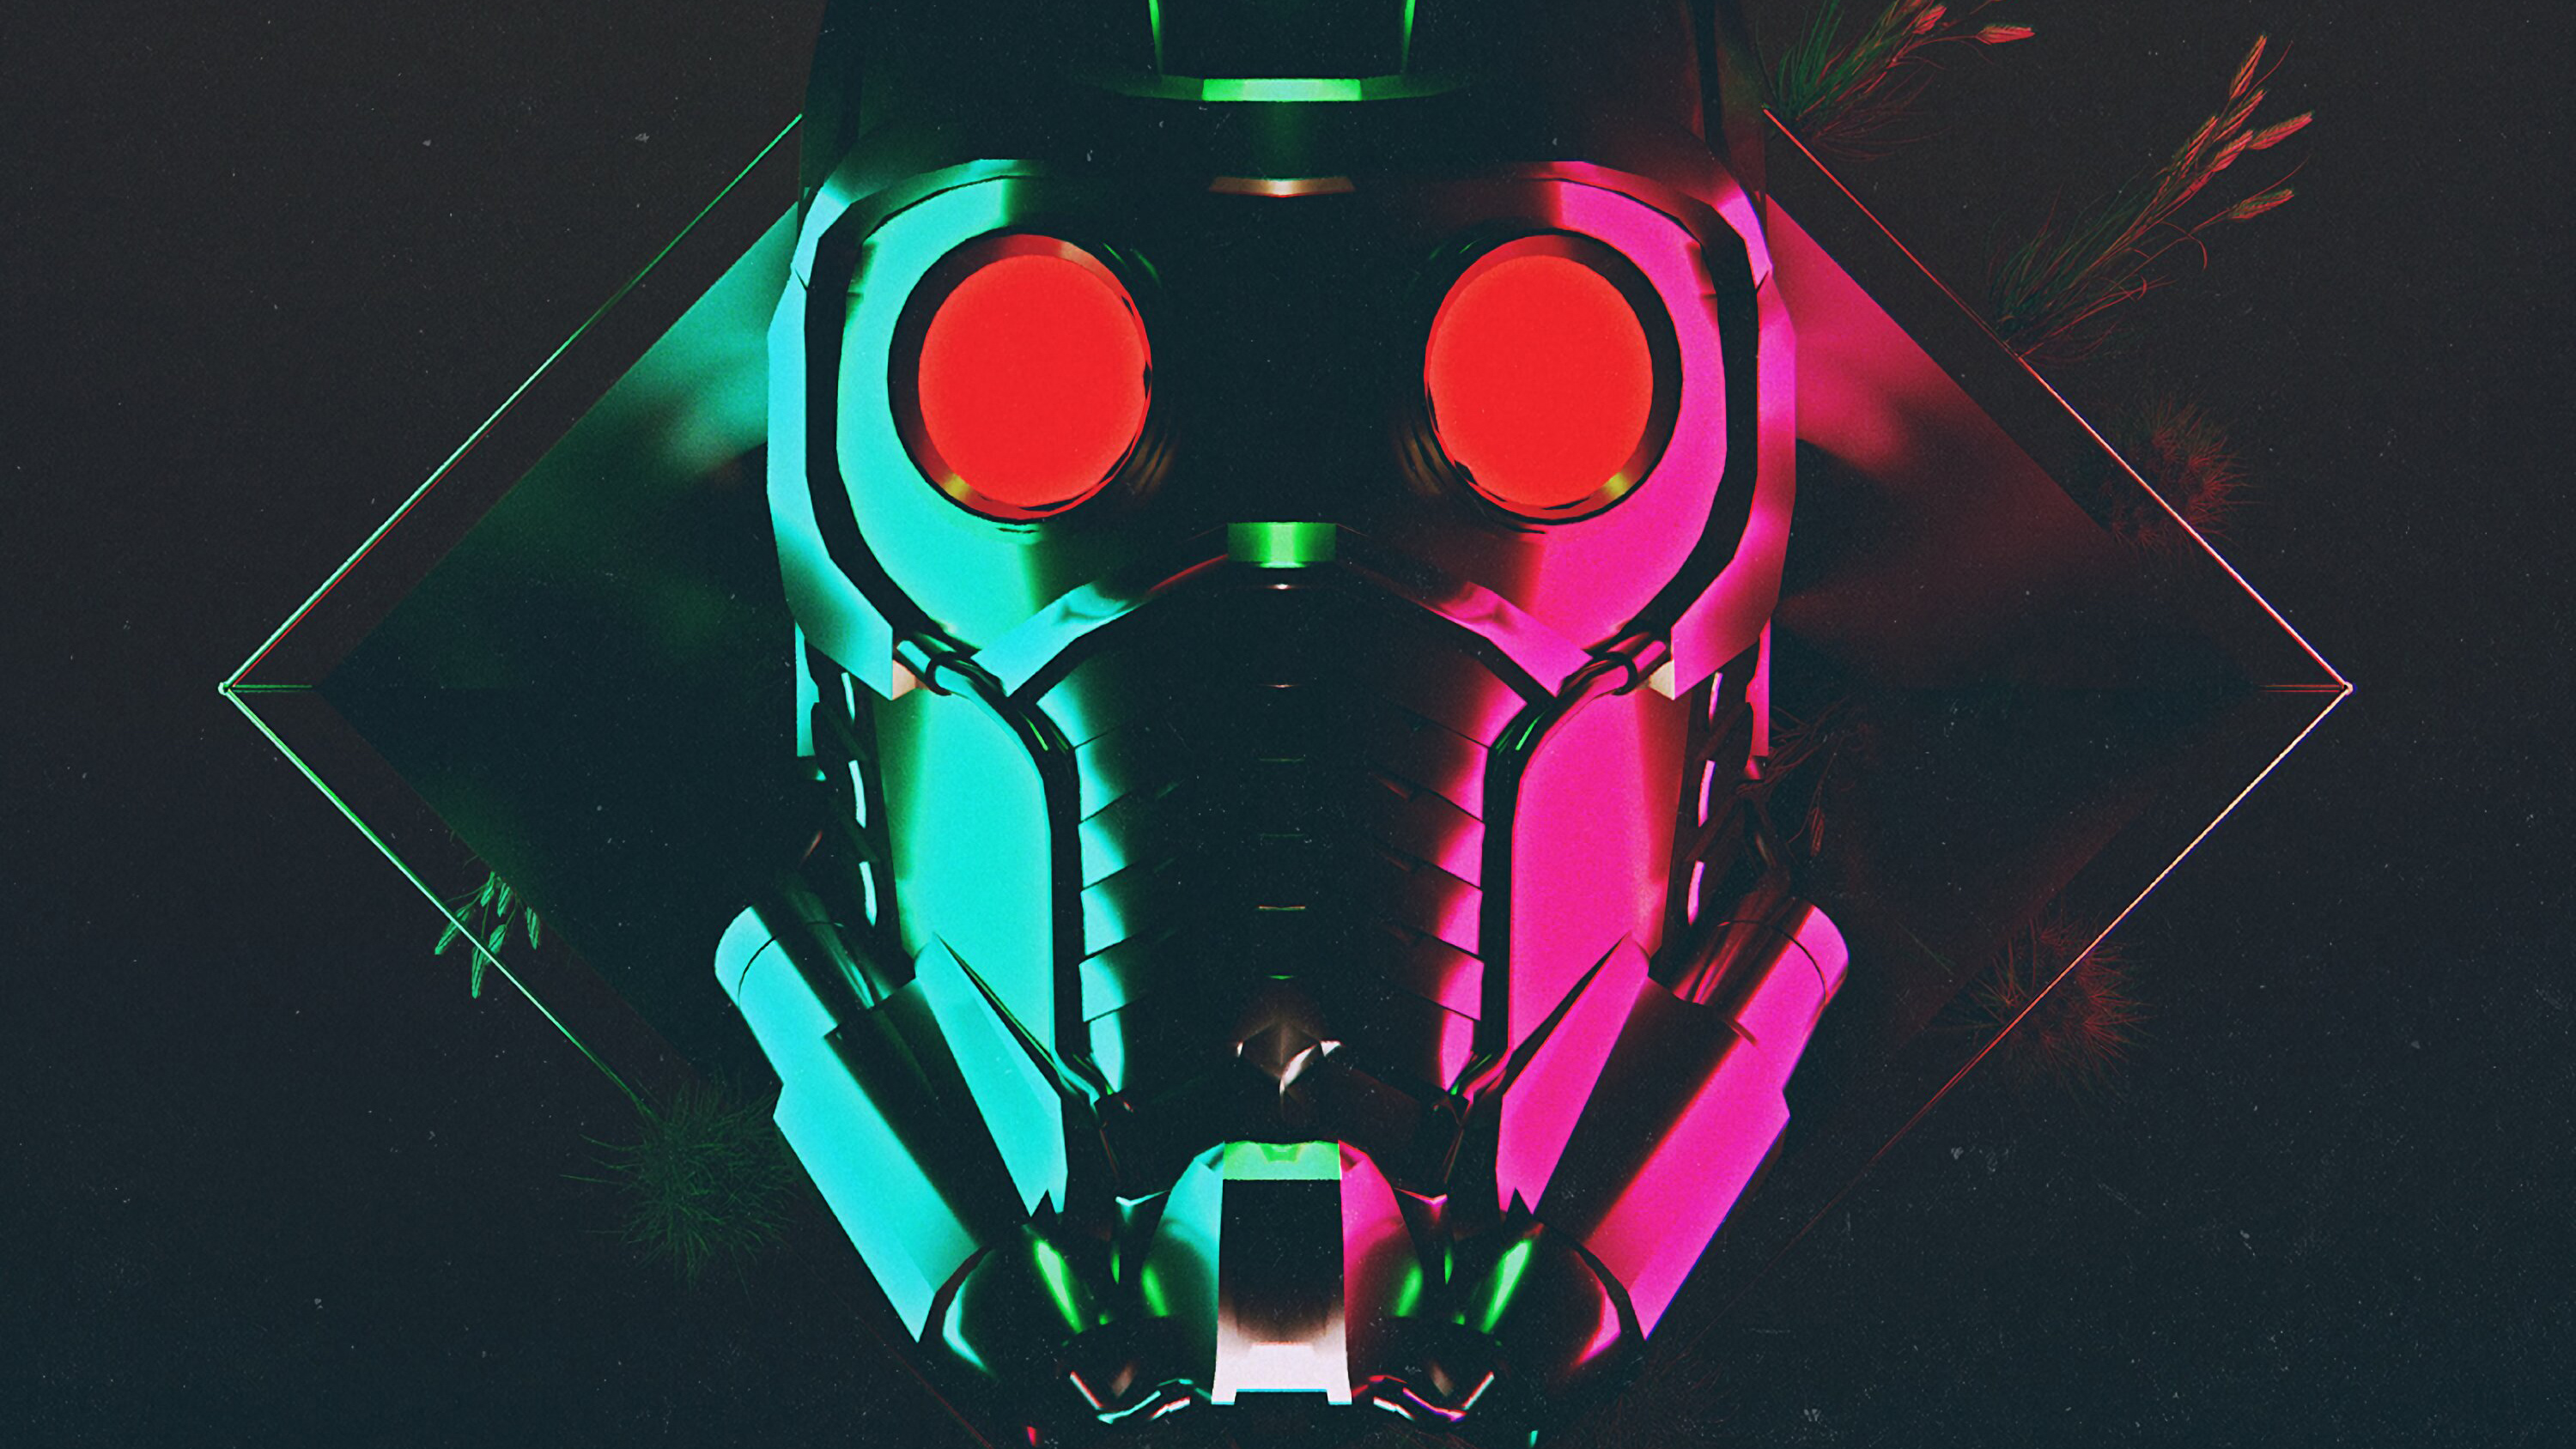 1366x768 Star Lord Mask 4k 1366x768 Resolution Hd 4k